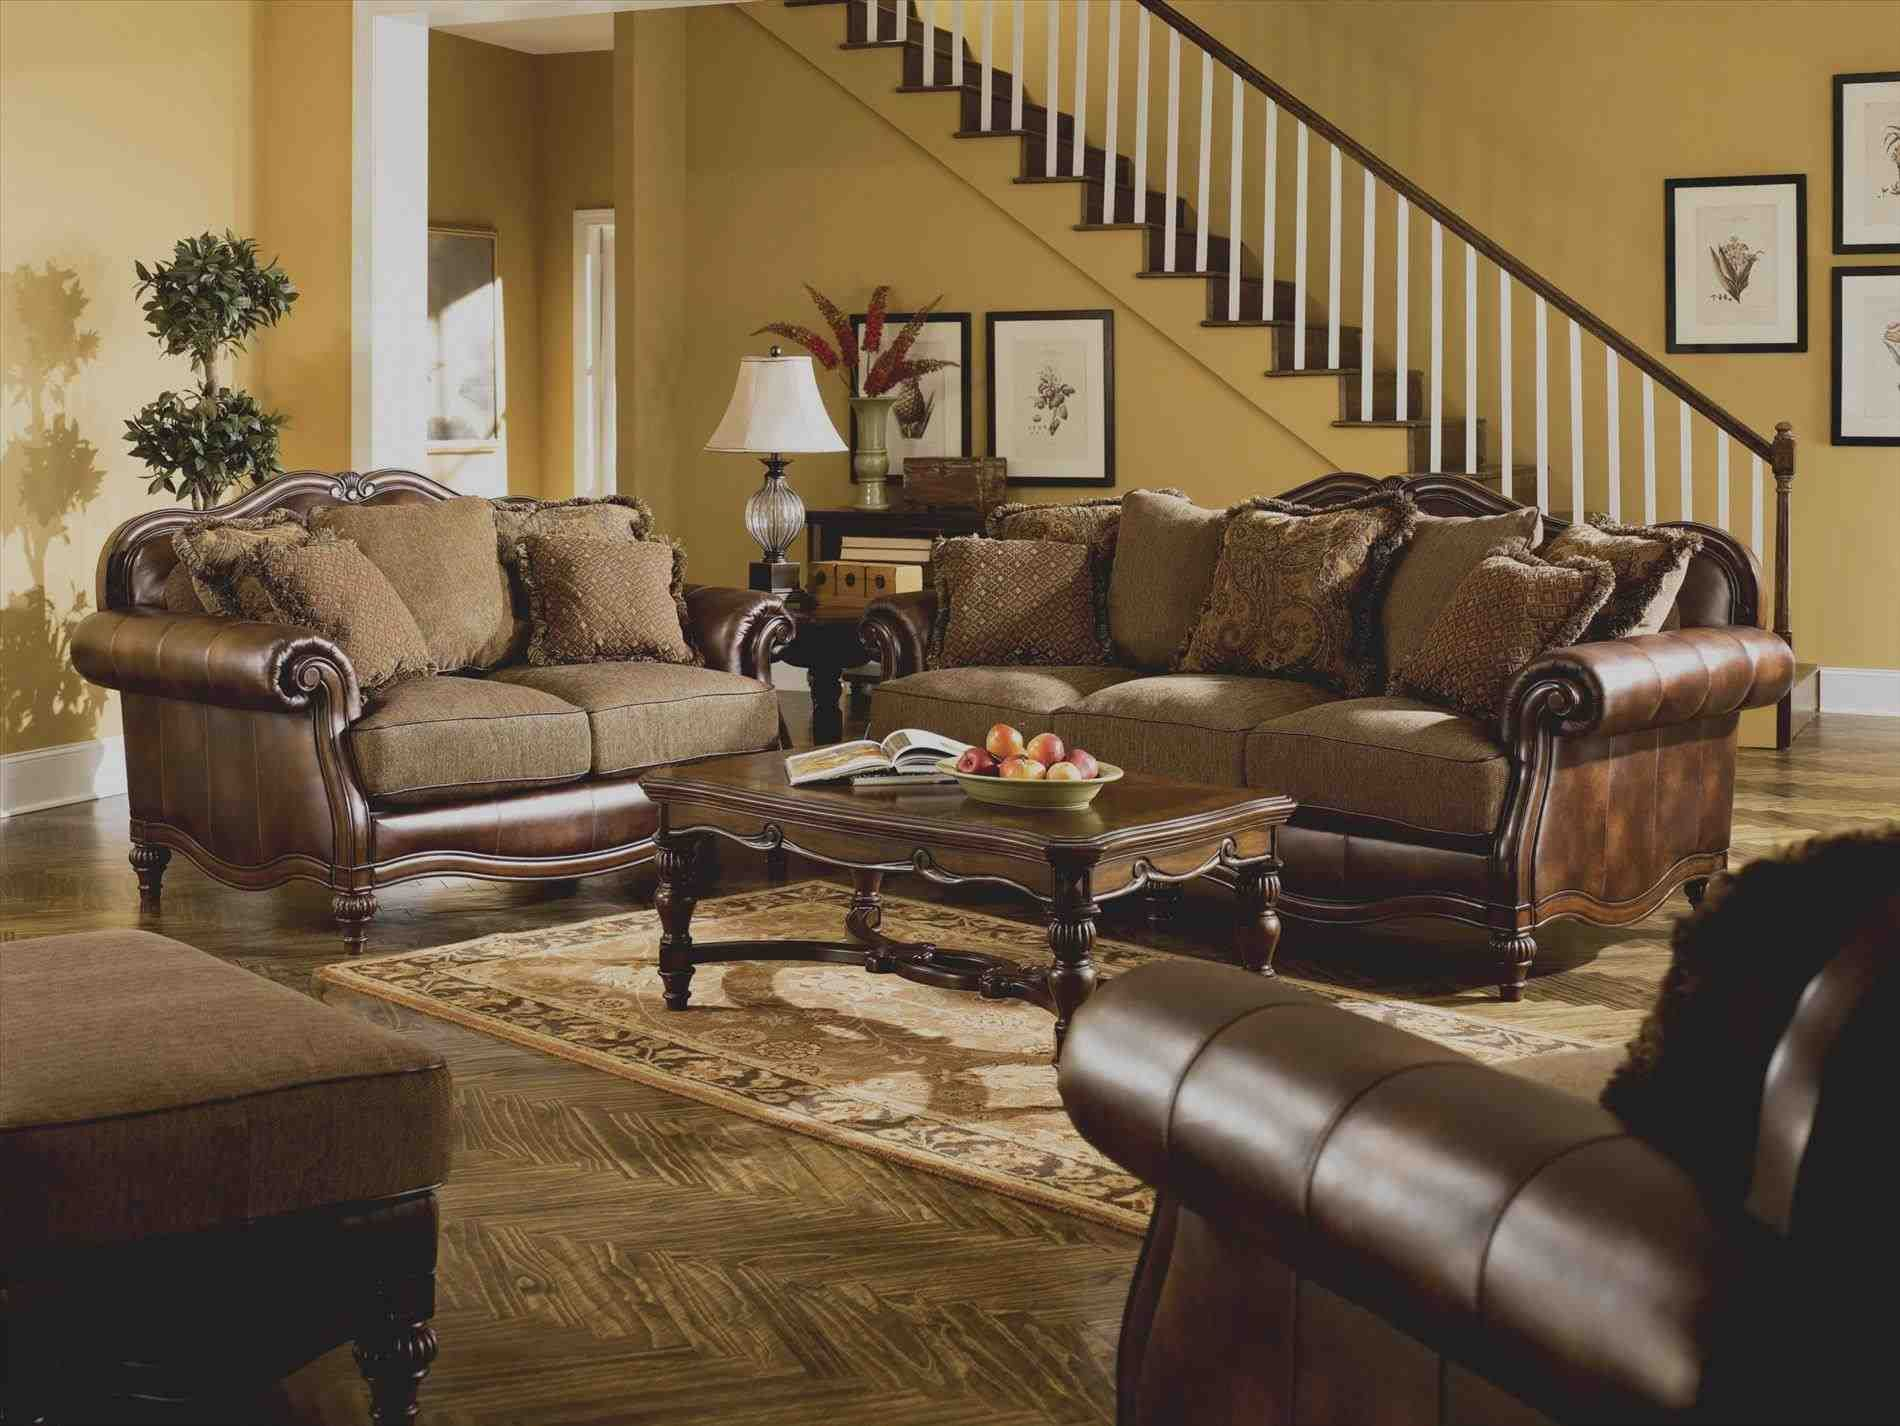 Cheap Living Room Furniture Sets Online Full Size Of Chairsofa throughout Low Priced Living Room Sets